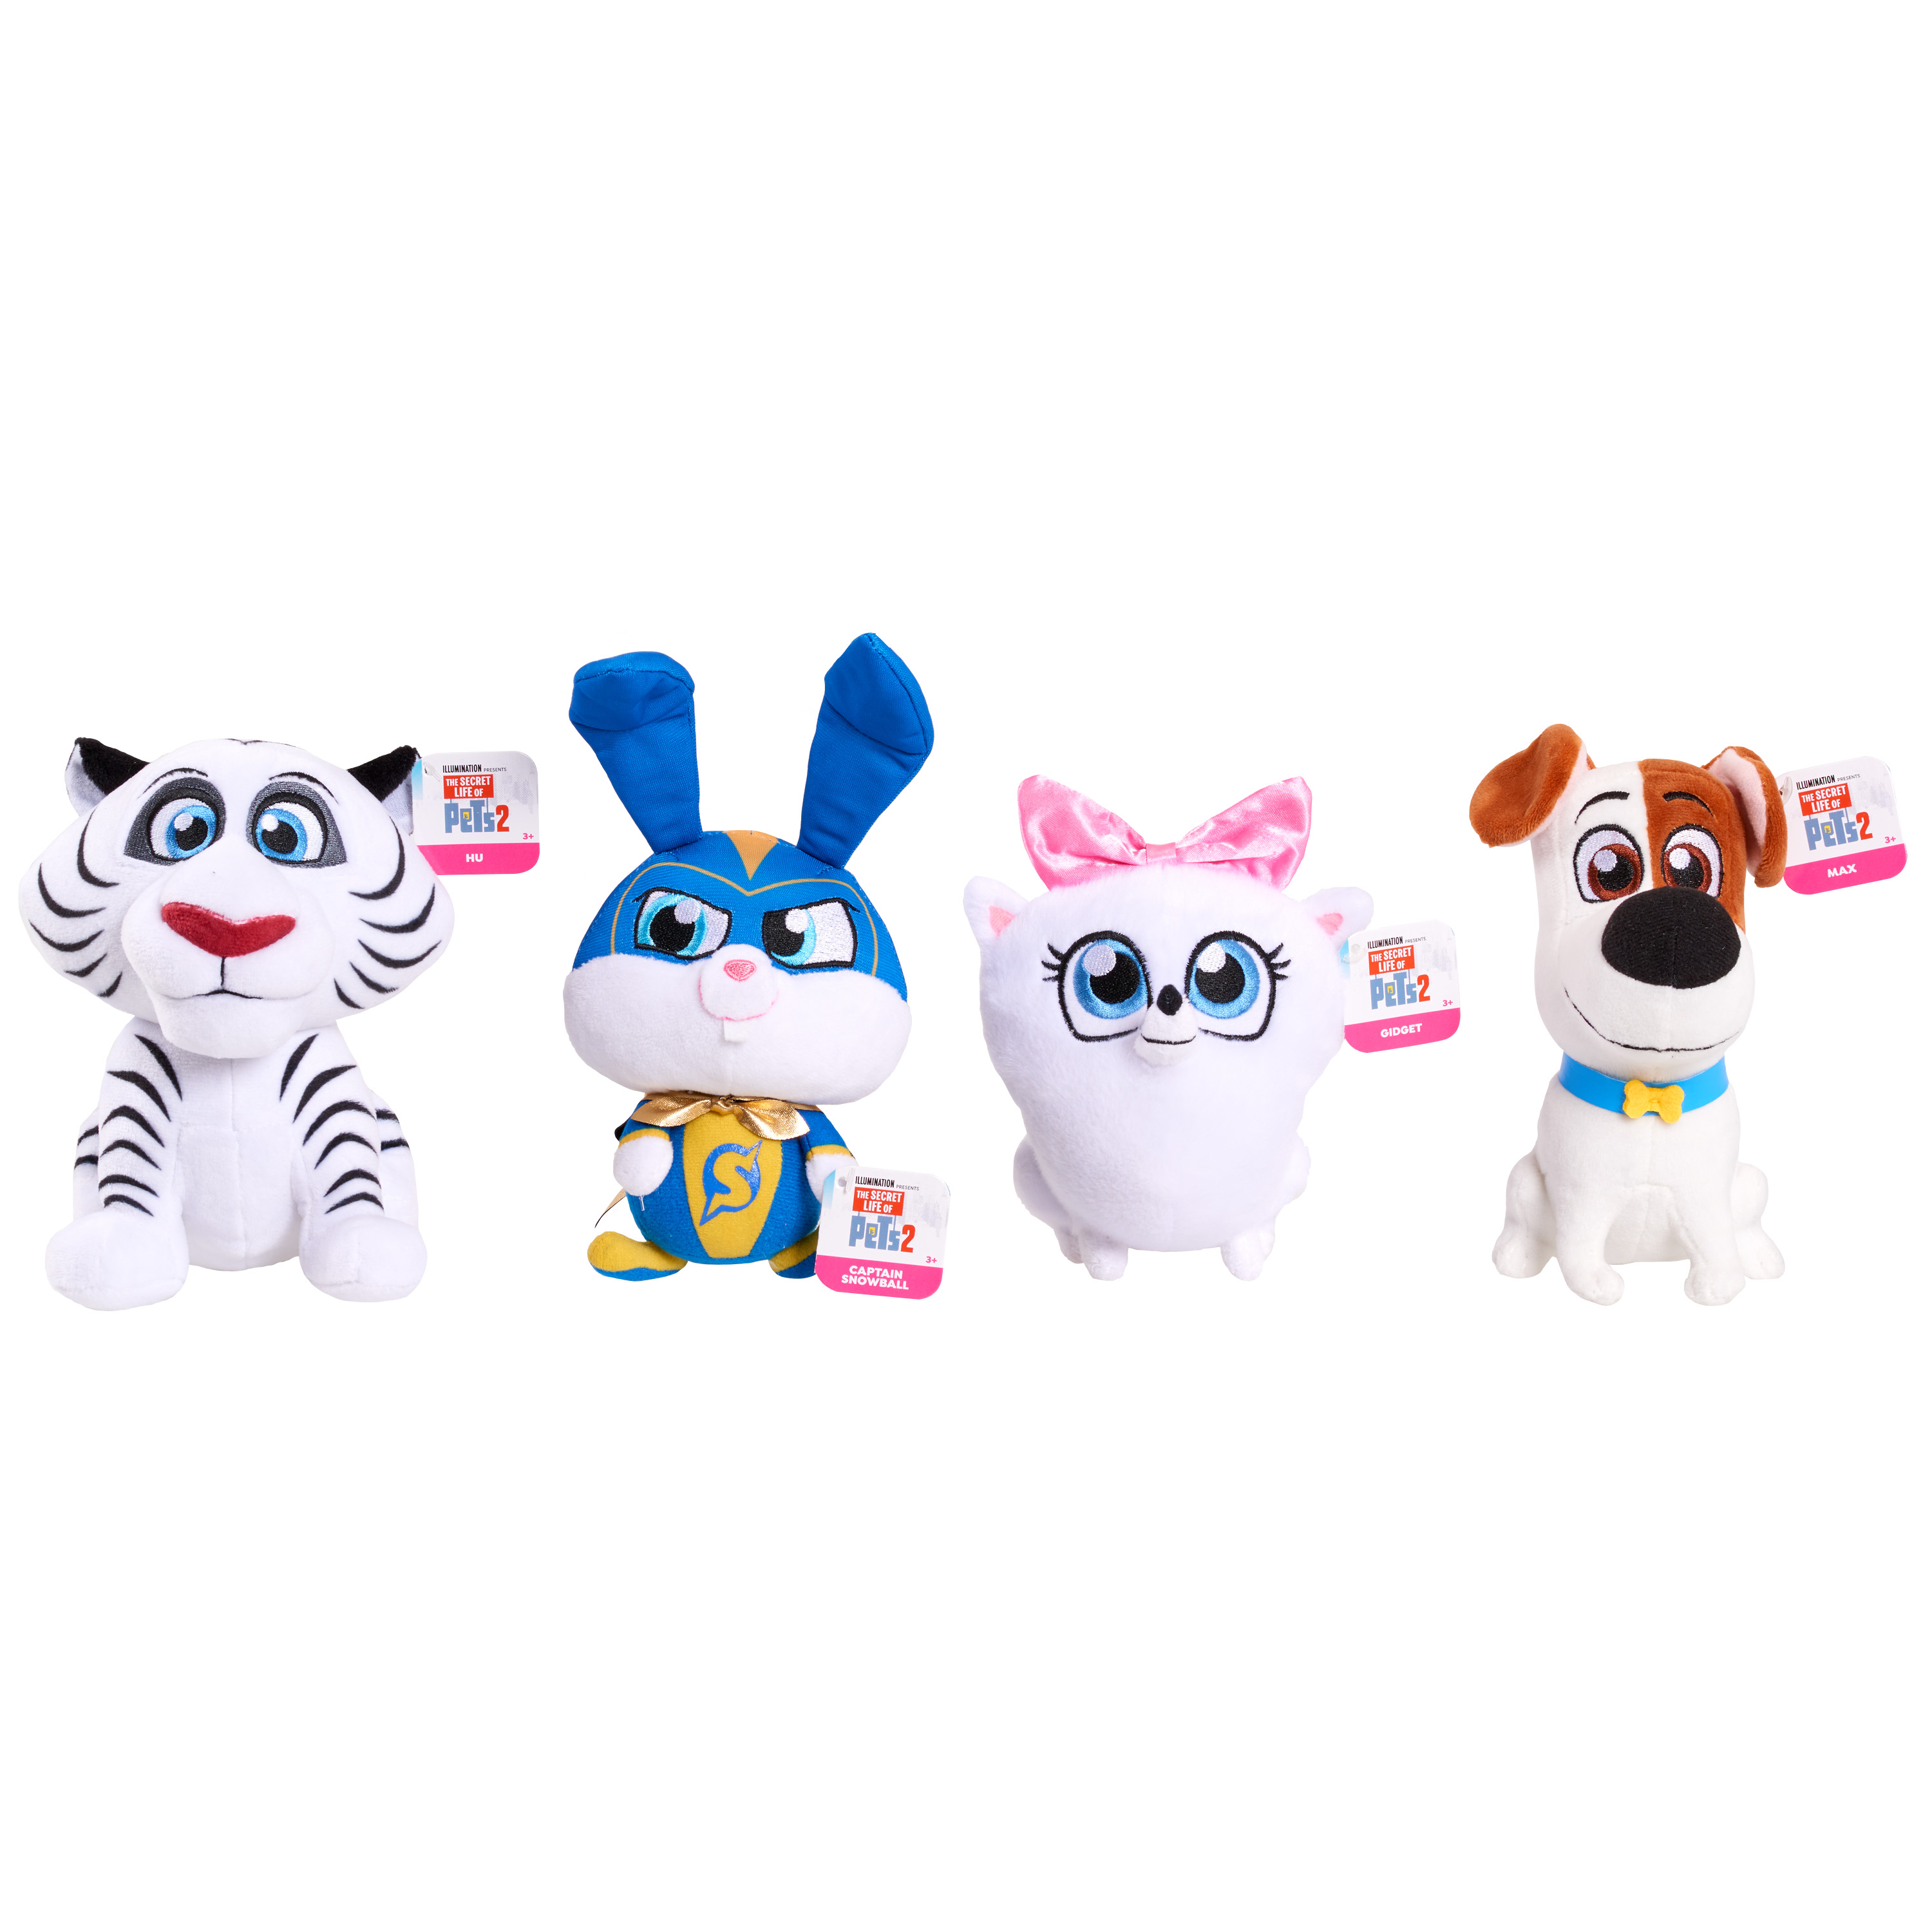 The Secret Life of Pets Plush Toys Just $1.25 Each at Walmart!